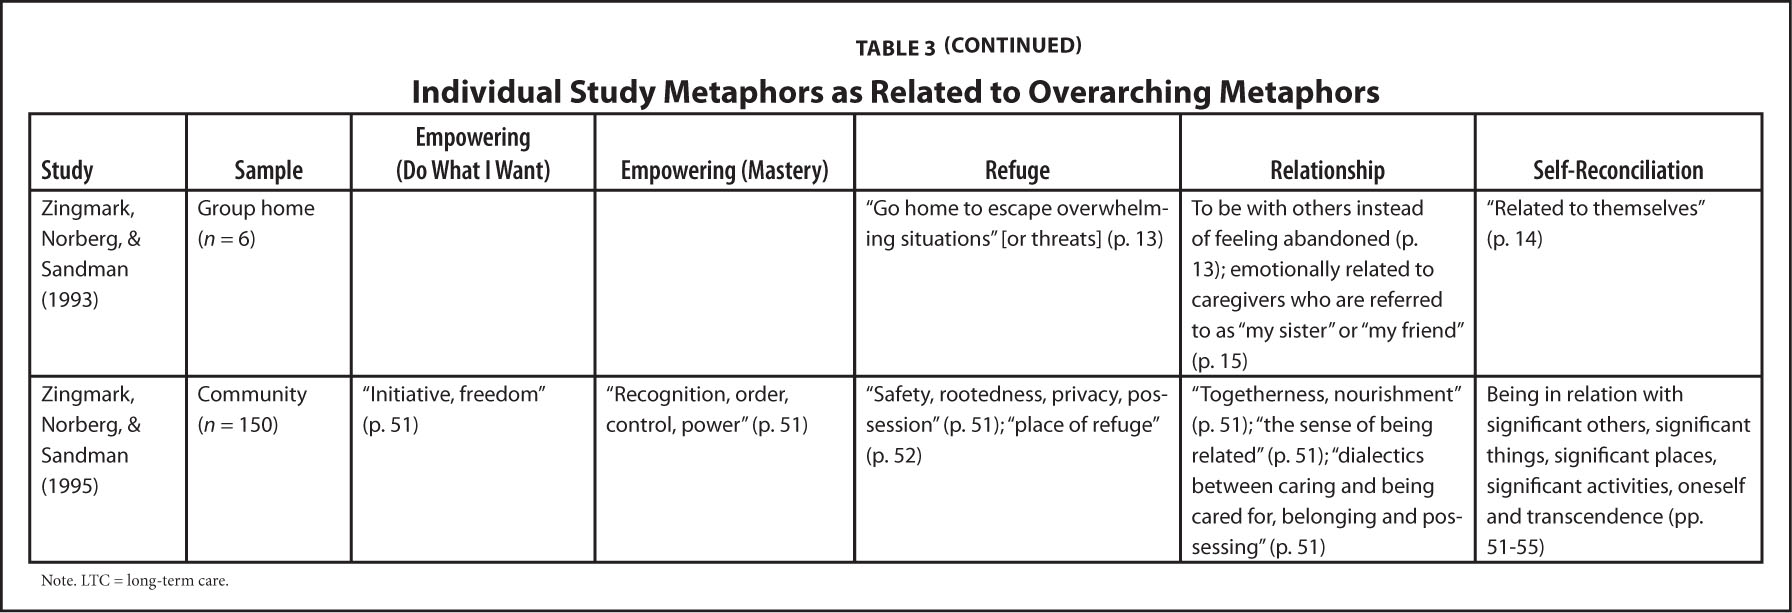 Individual Study Metaphors as Related to Overarching Metaphors